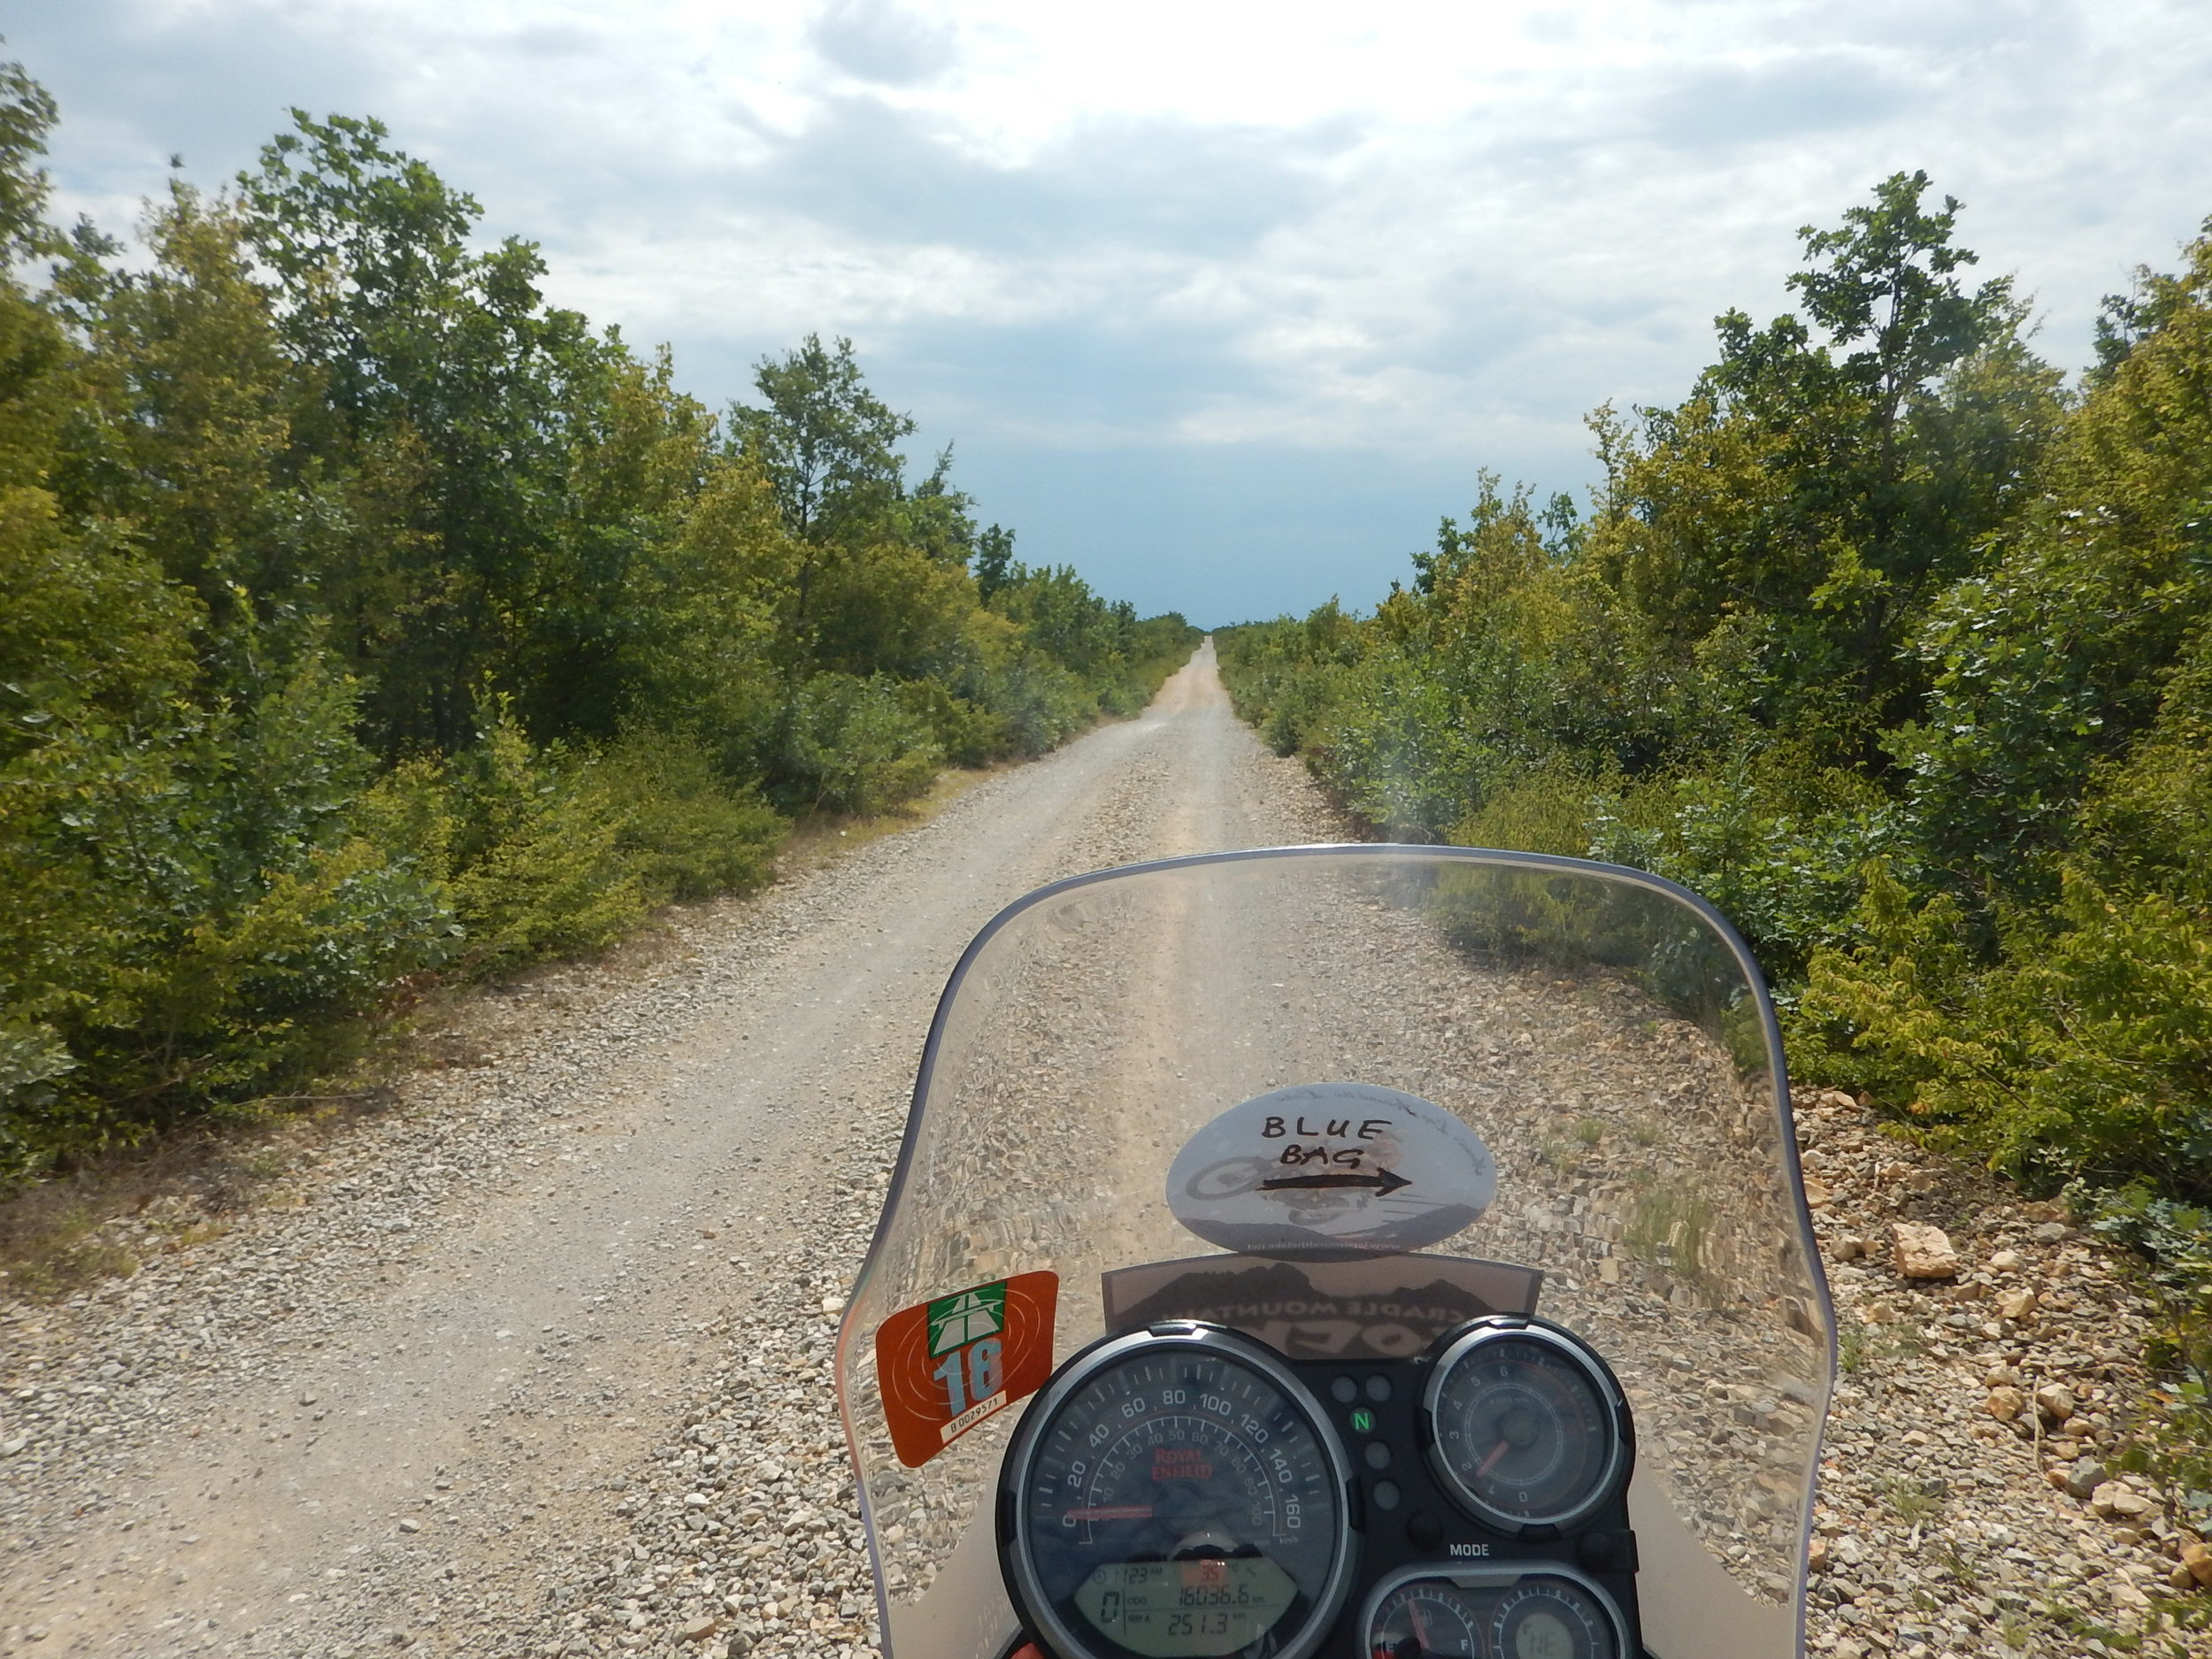 Oh, yes I travelled about 20km on this unsealed road